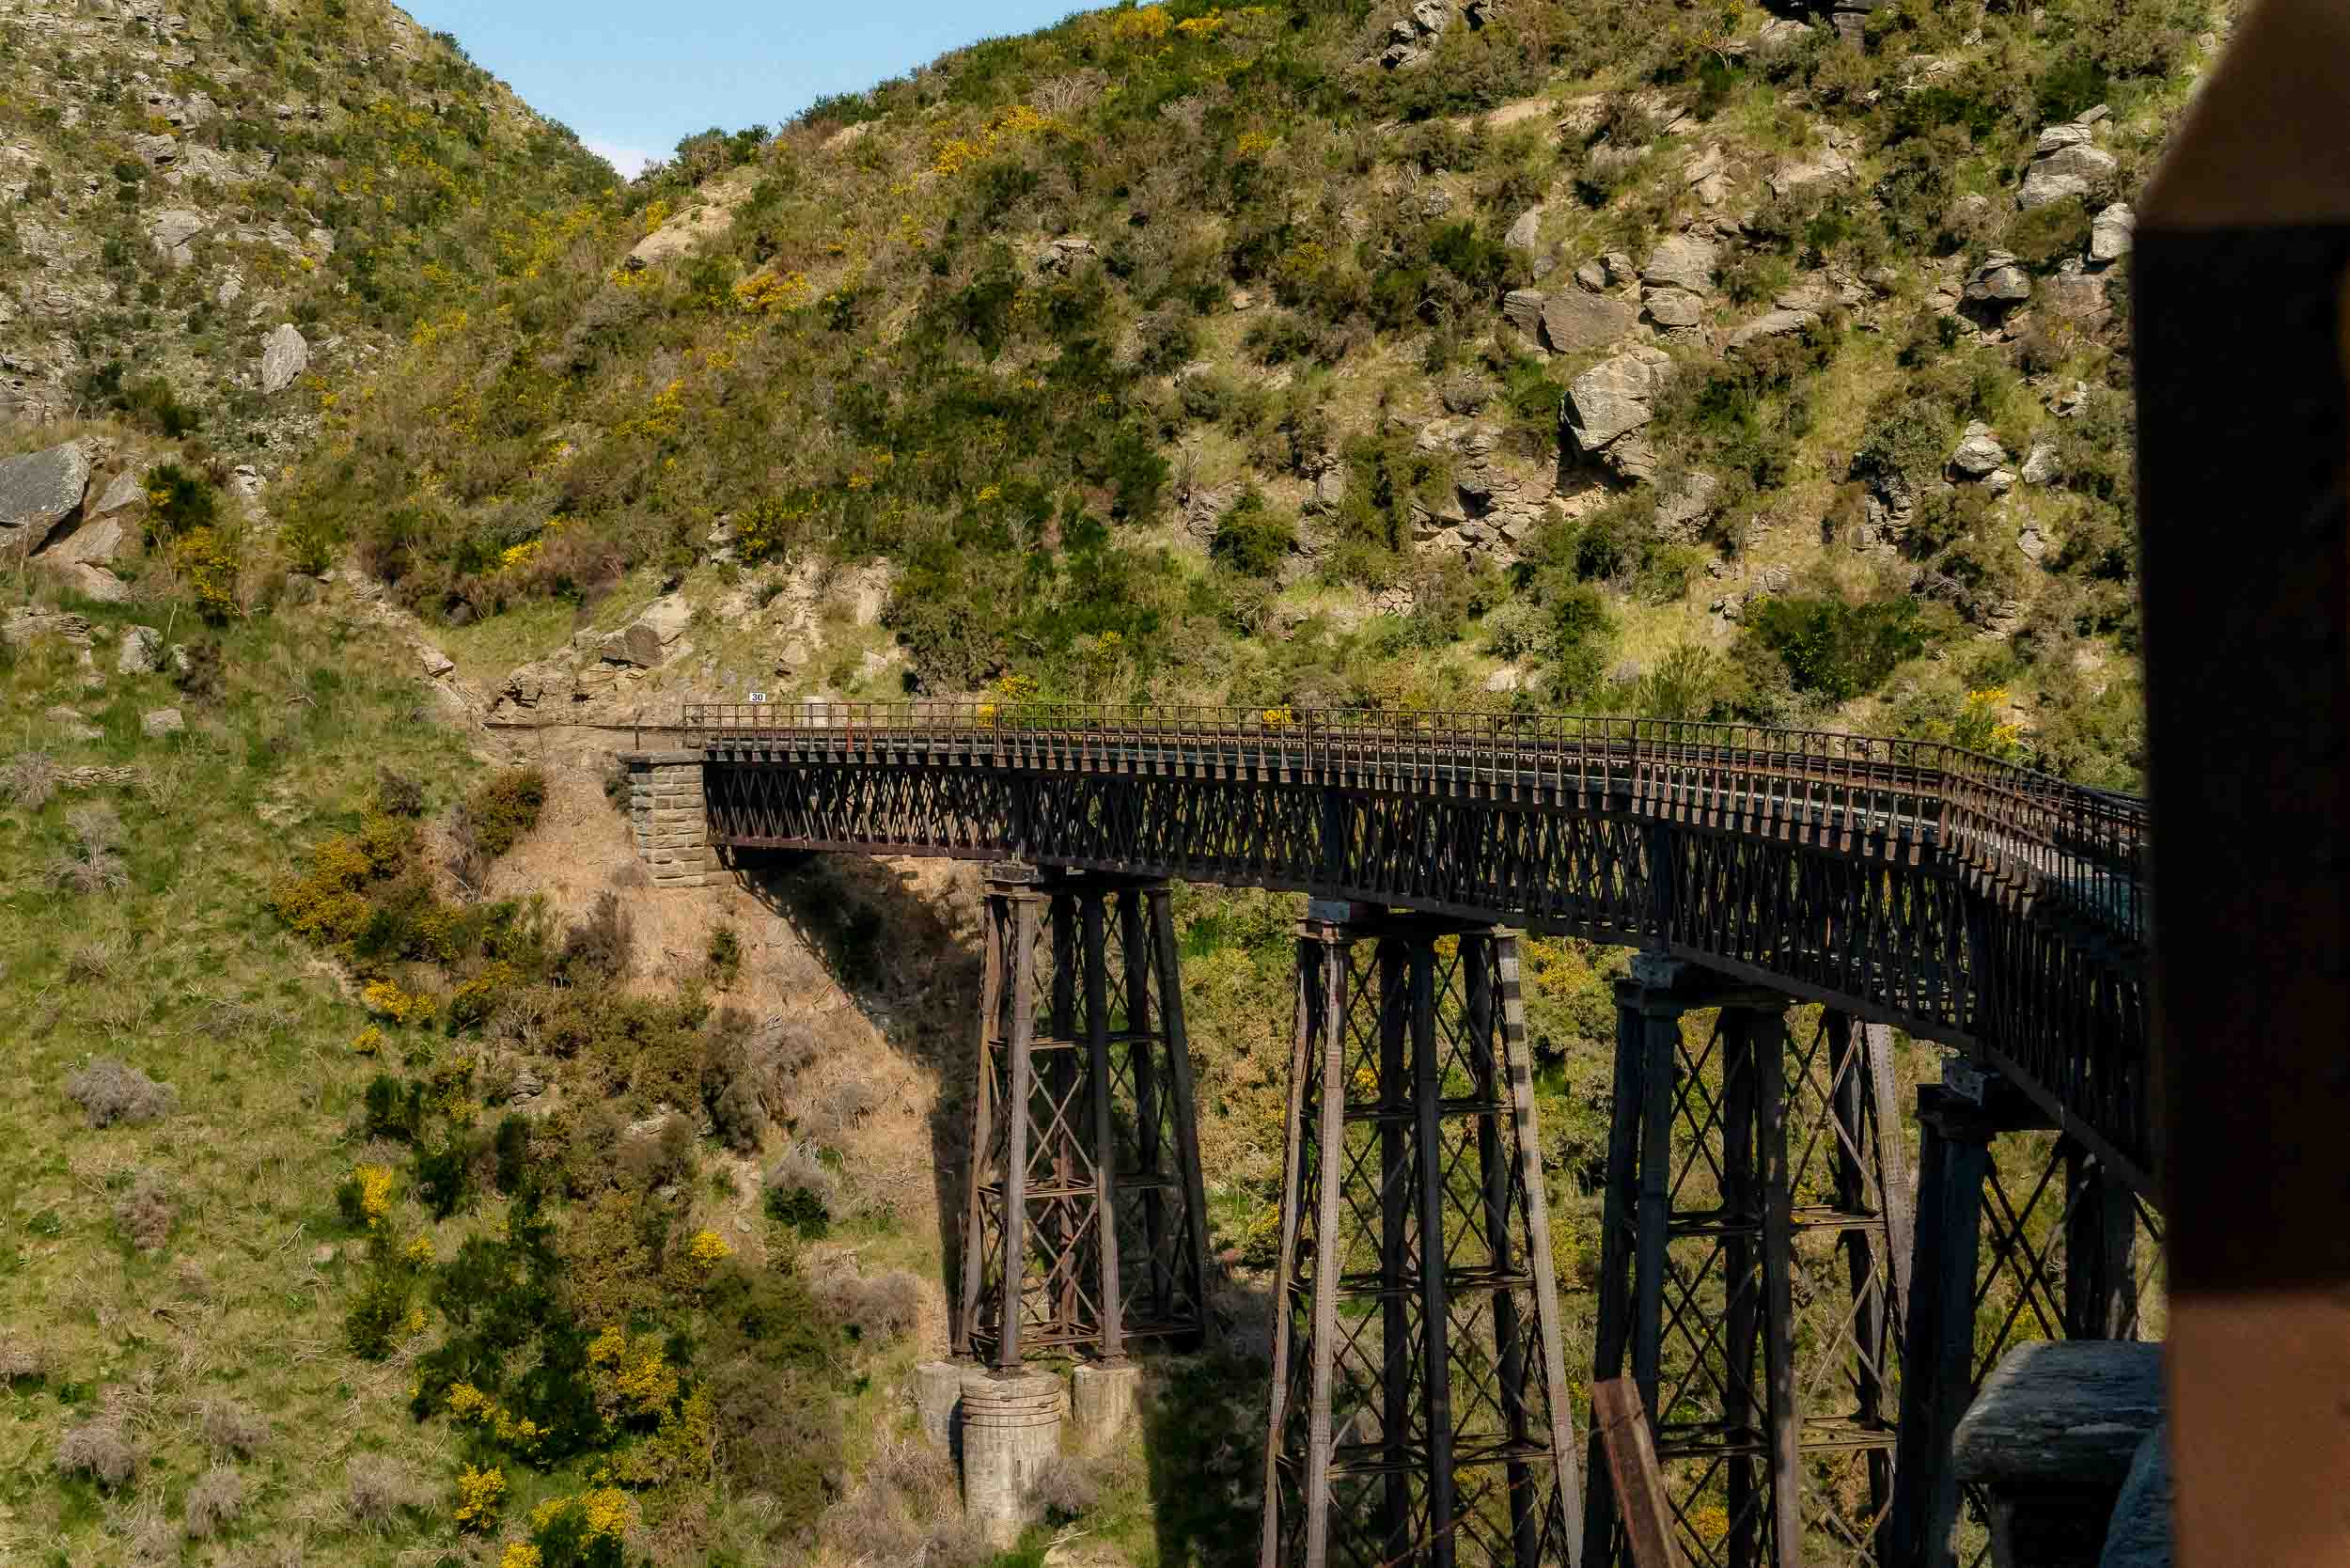 One of several    viaducts    on the spectacular    Taieri Gorge Railway    line out of    Dunedin    in the Otago region of    New Zealand   .